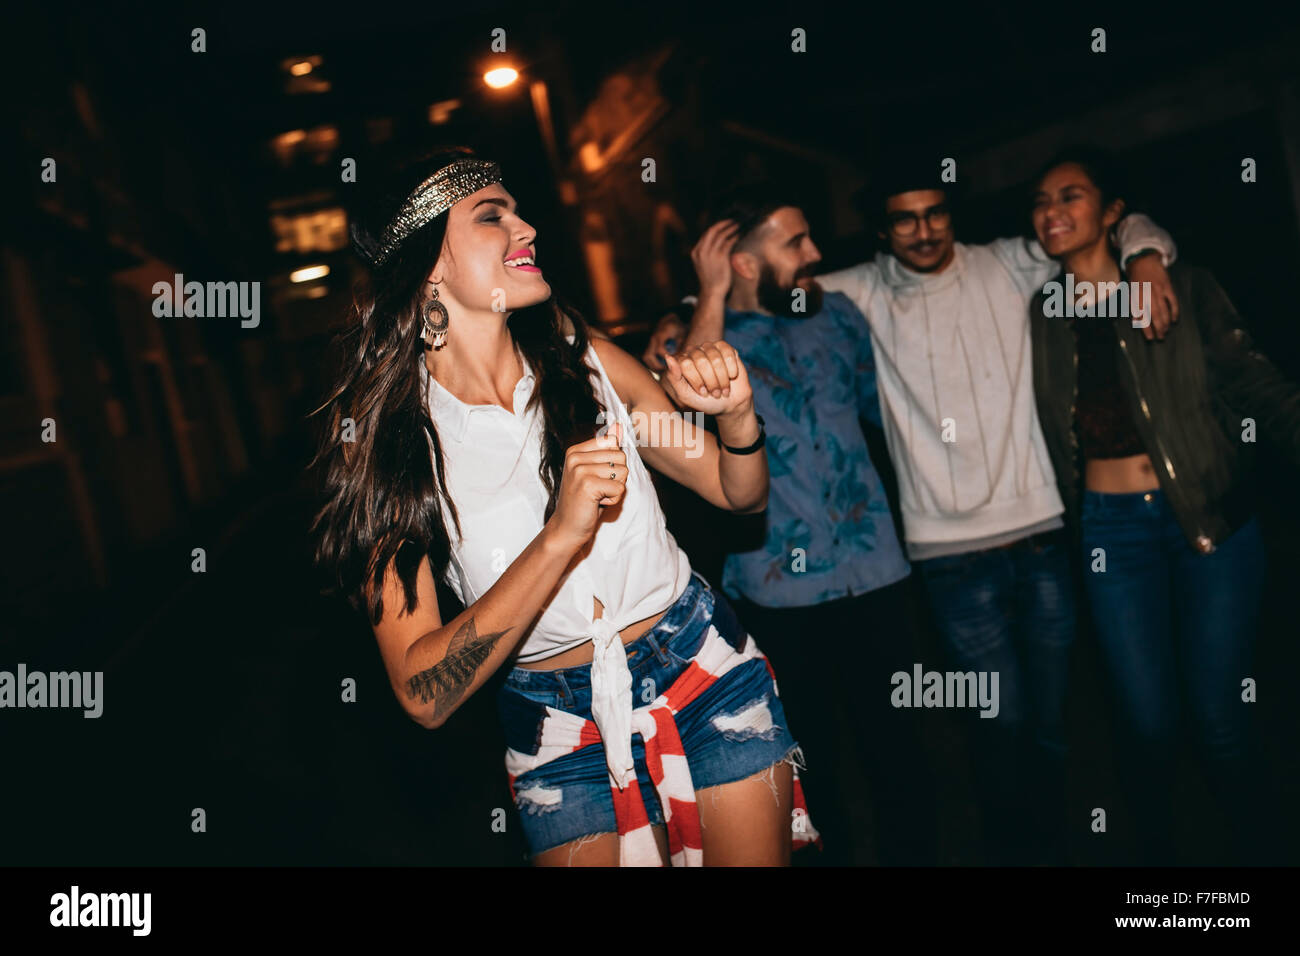 Portrait of pretty young woman dancing with her friends in background. Happy young female enjoying in a party with - Stock Image